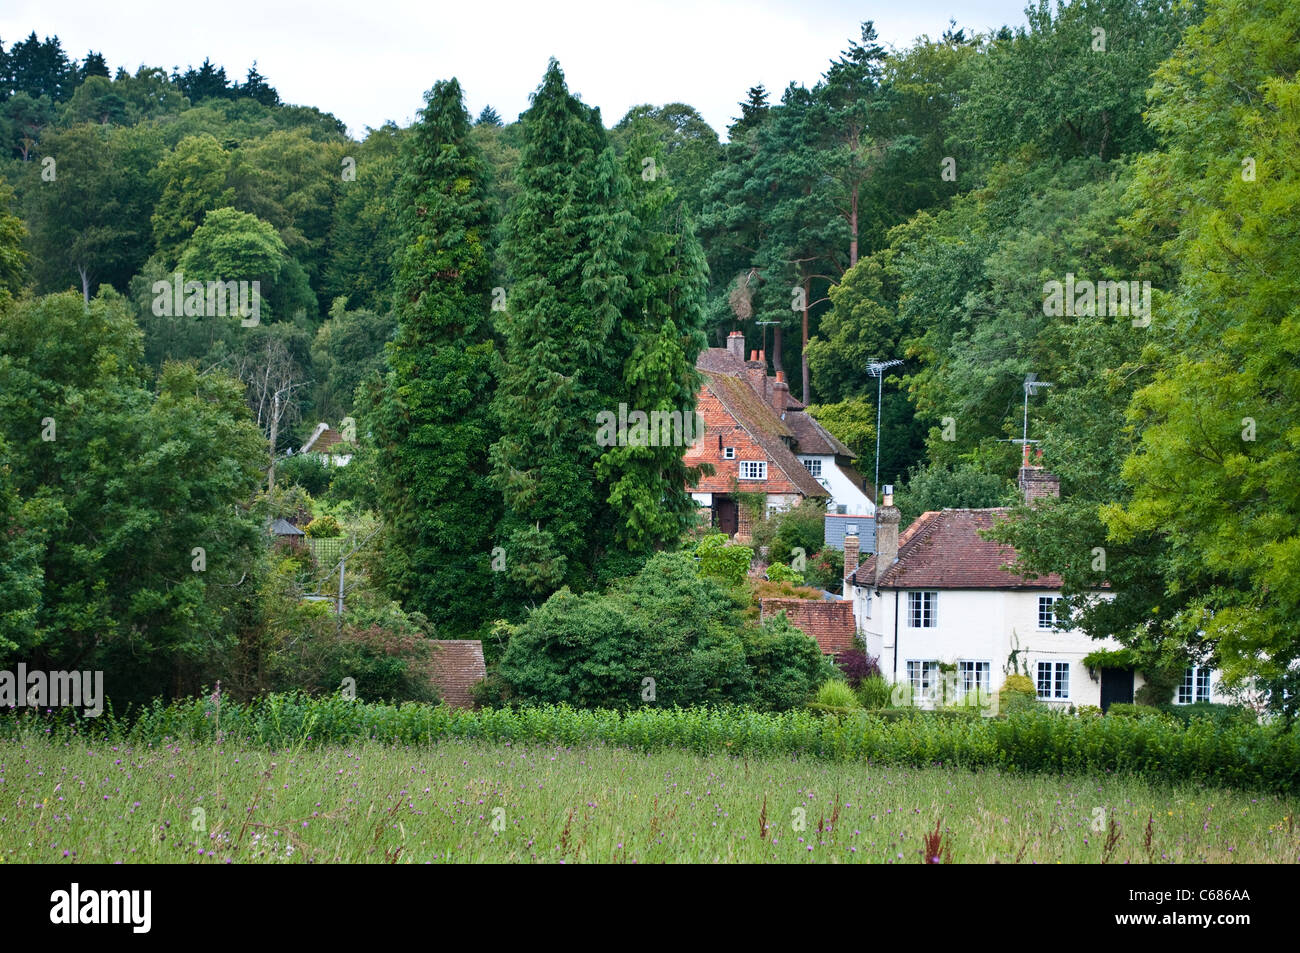 Country houses near Guildford, Surrey, UK - Stock Image